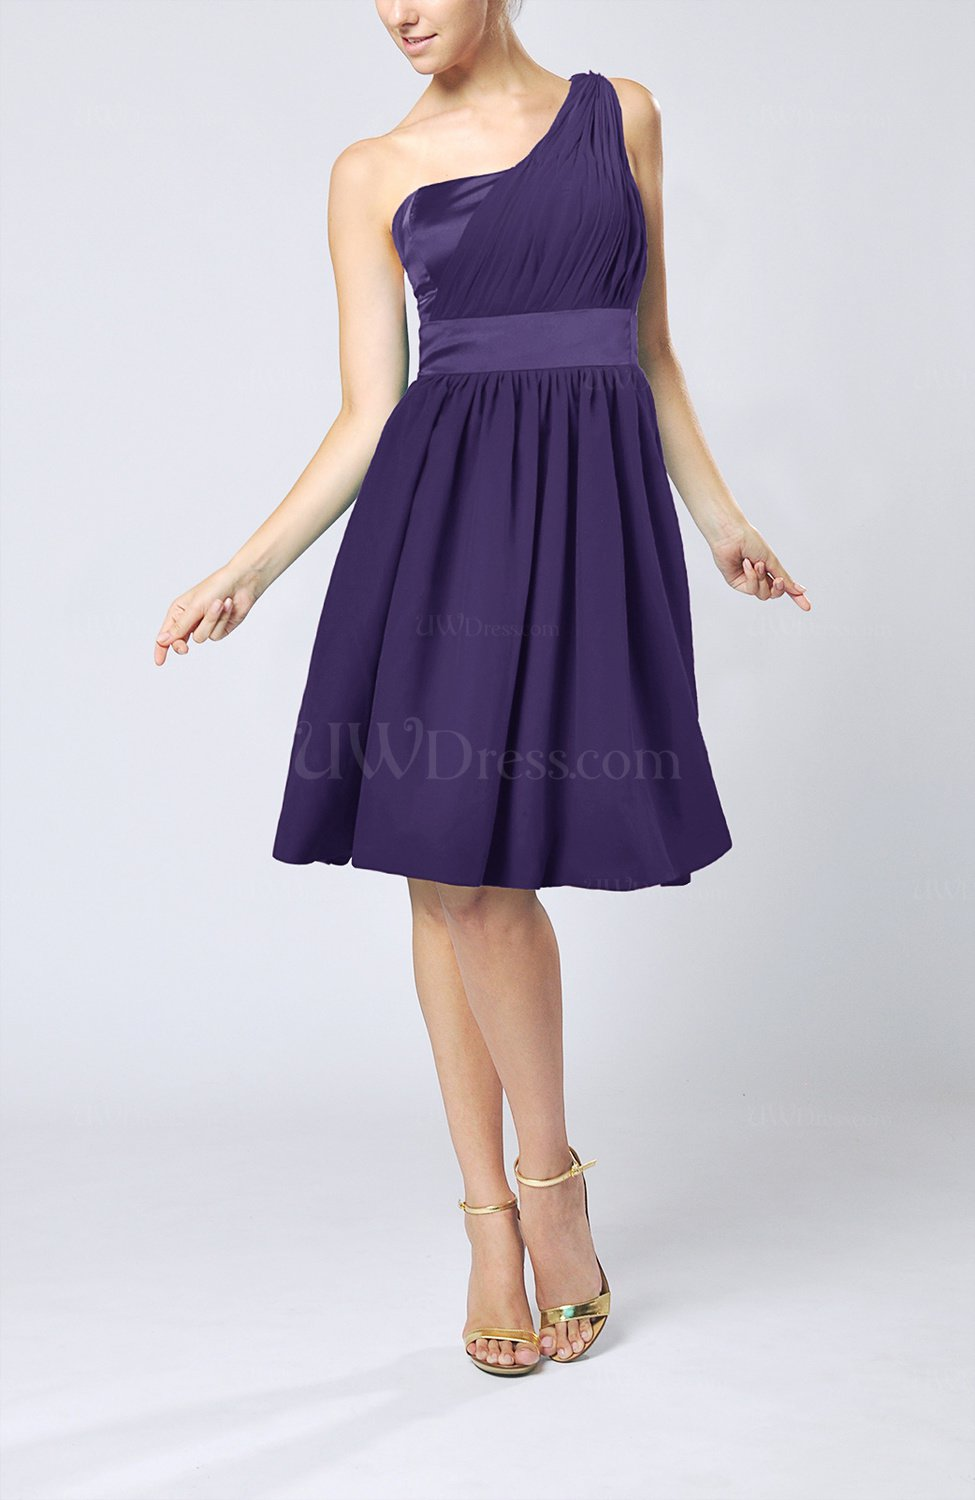 a30242a3194 Royal Purple Modern A-line One Shoulder Sleeveless Chiffon Bridesmaid  Dresses (Style D75846)